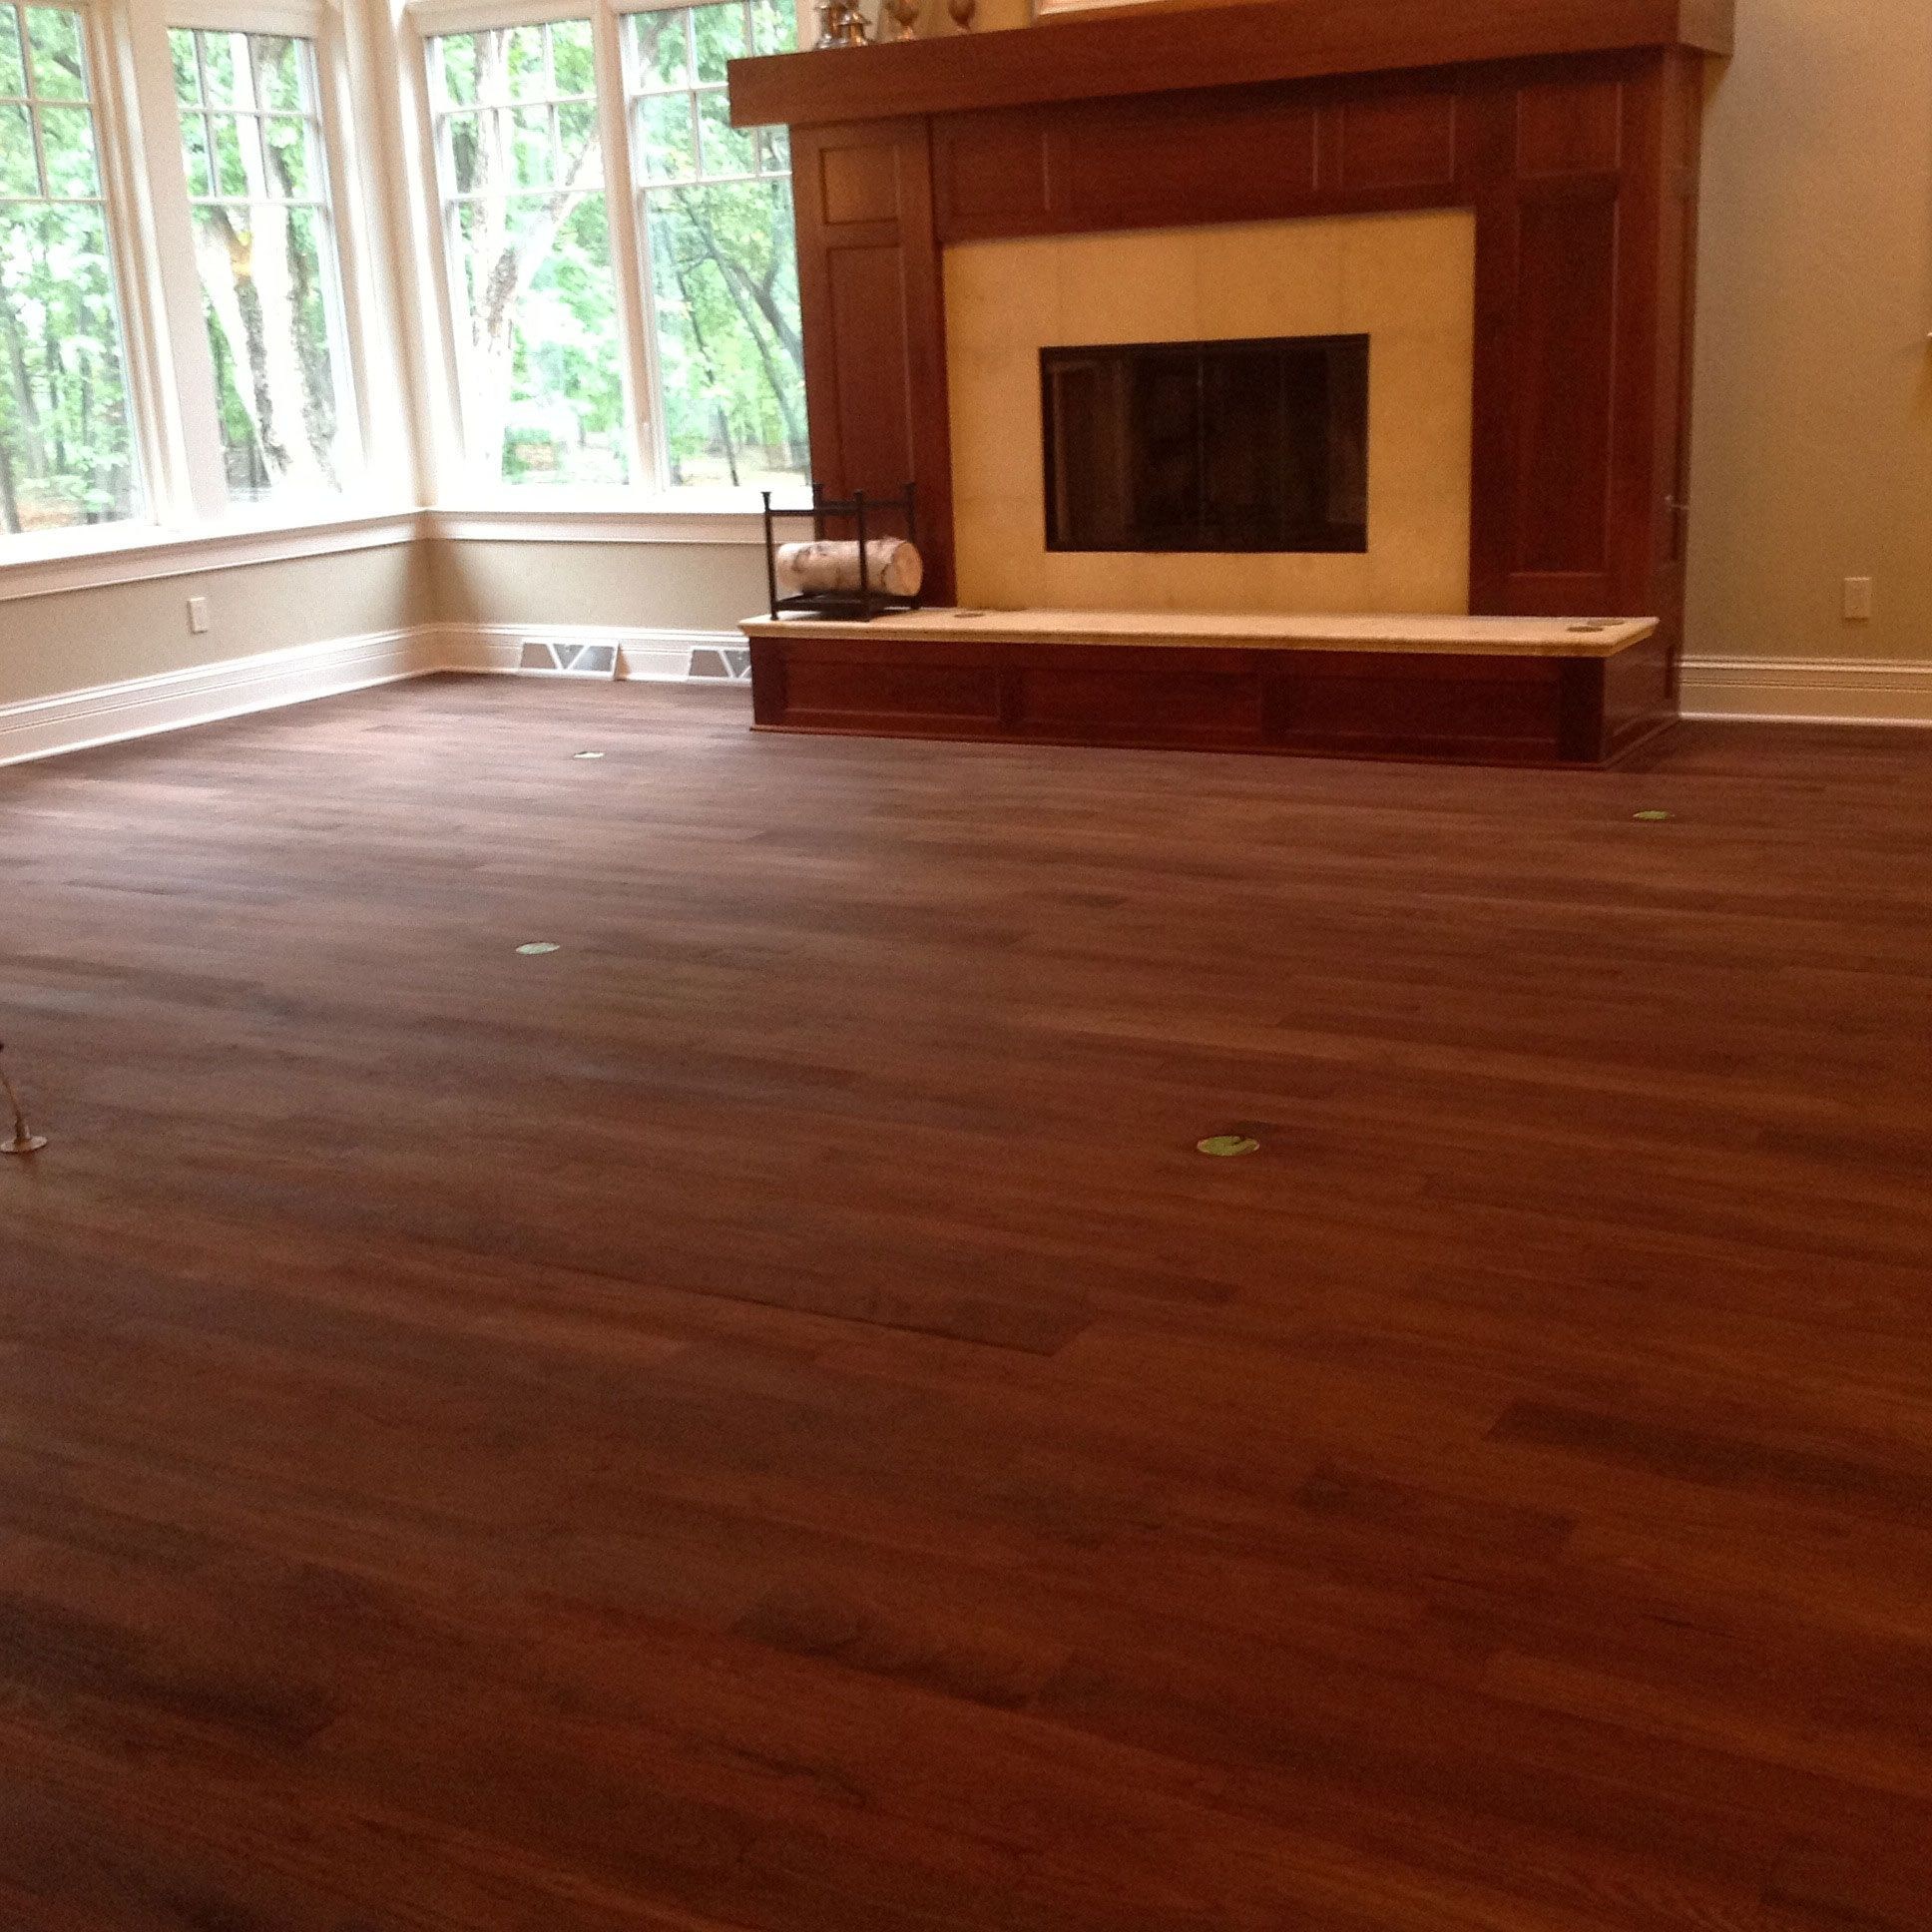 Water Stain On Hardwood Floor: Stain Trial Completed For General Finishes Water Based